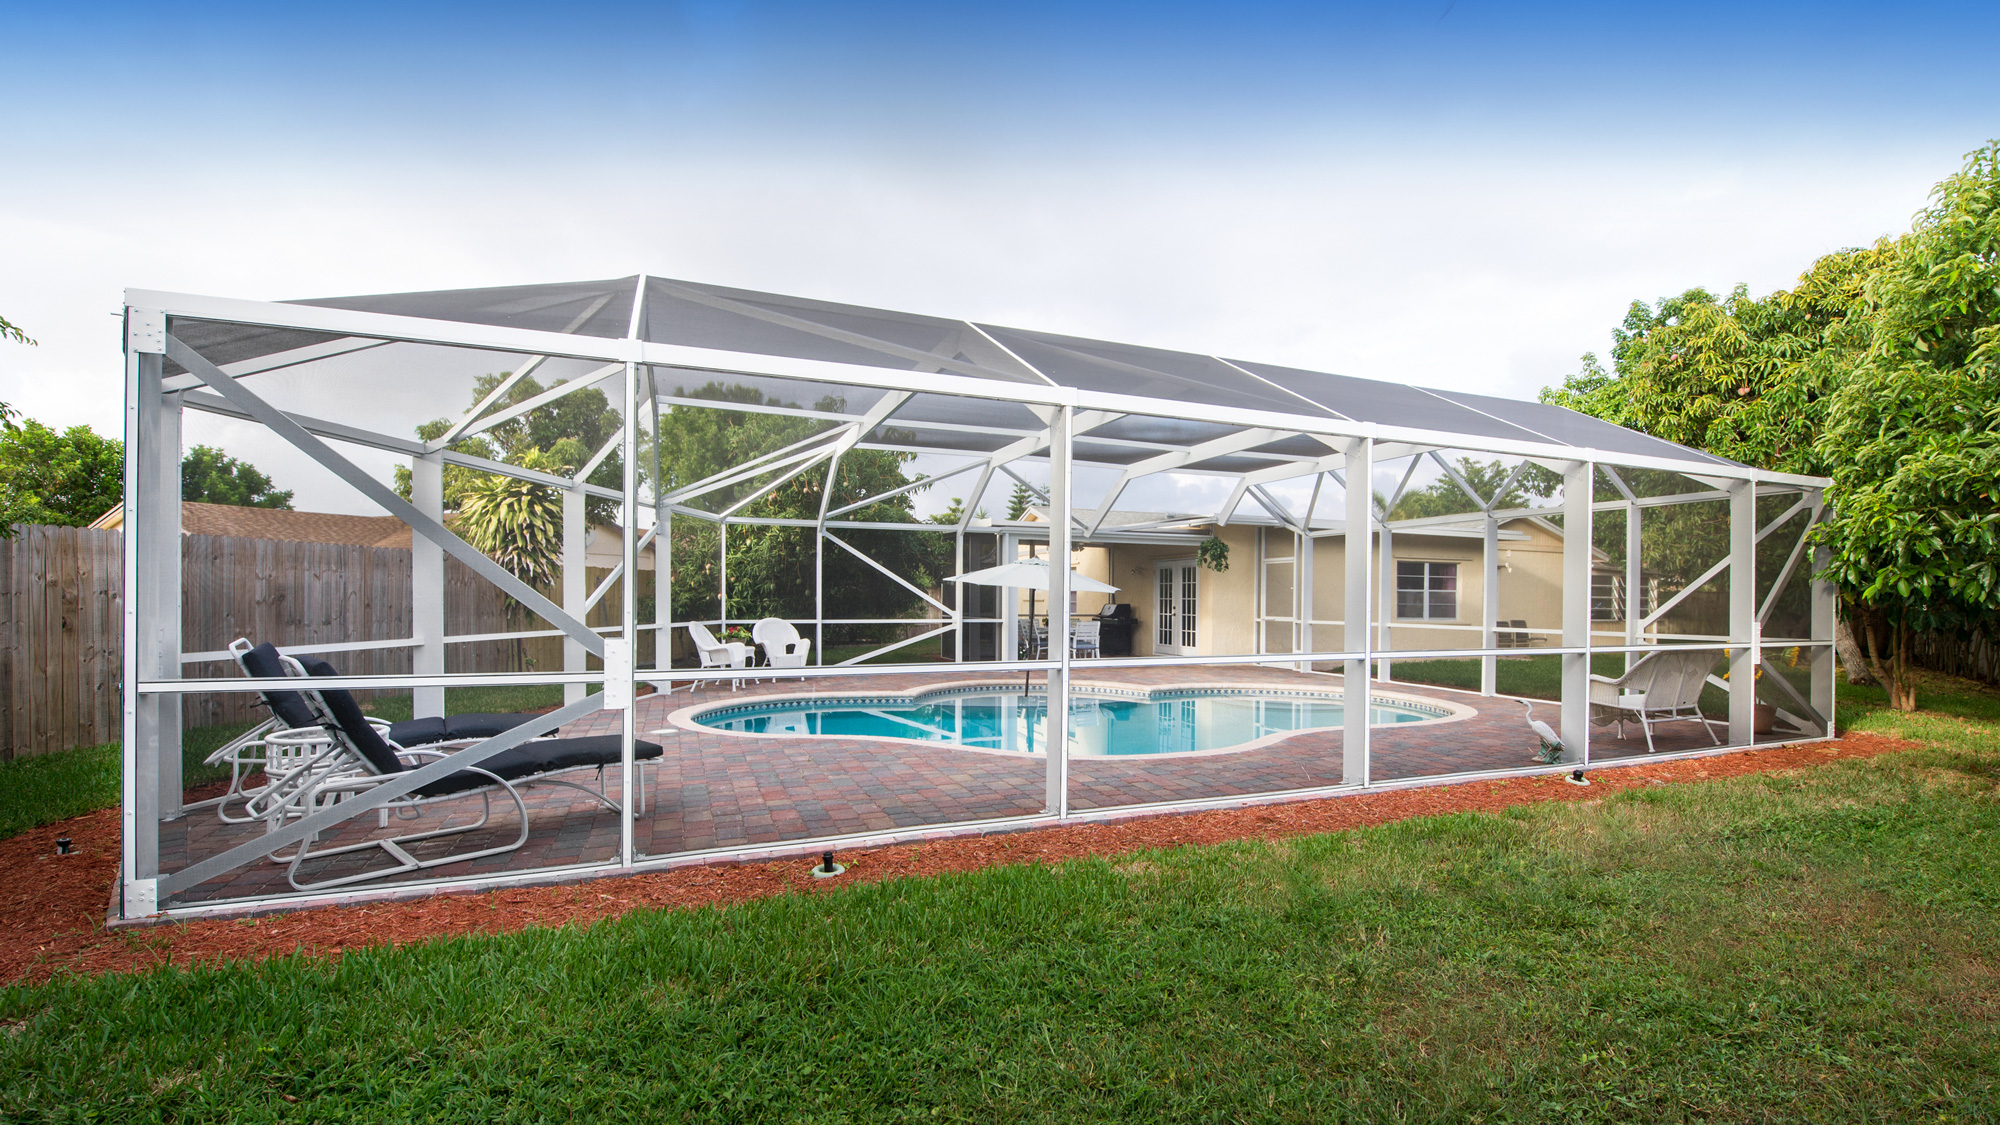 Gallery Floridian Patio Products